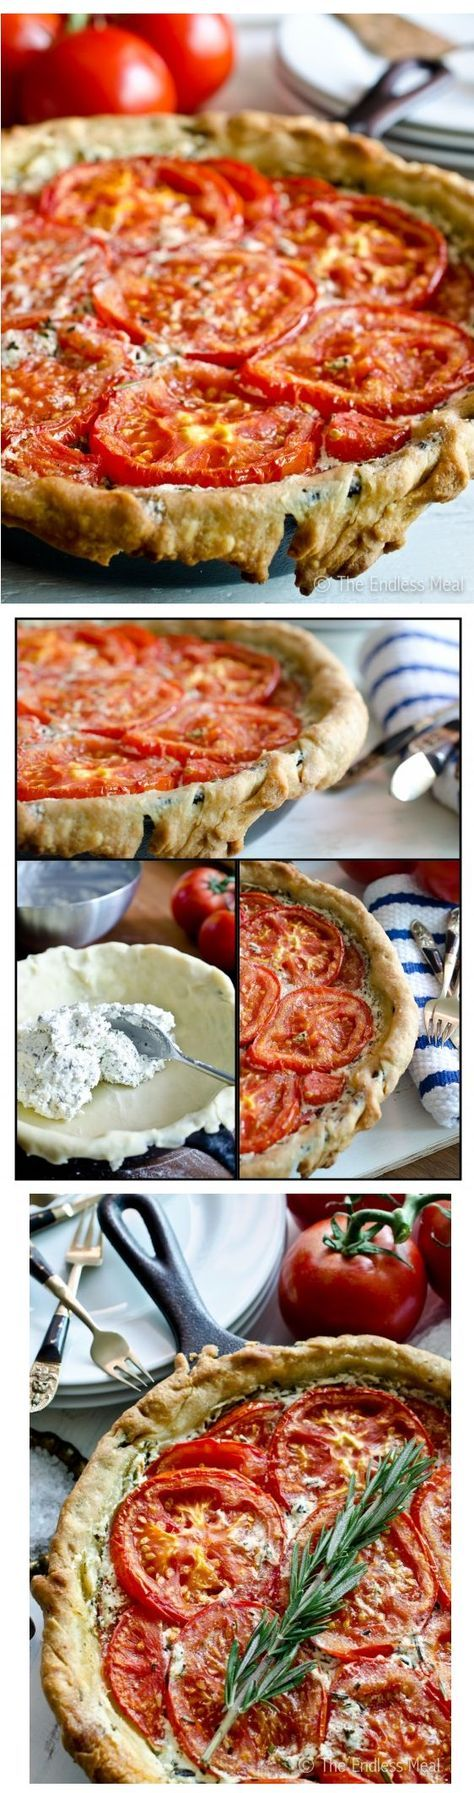 Goat Cheese and Tomato Tart with Rosemary and Mascarpone   The Endless Meal